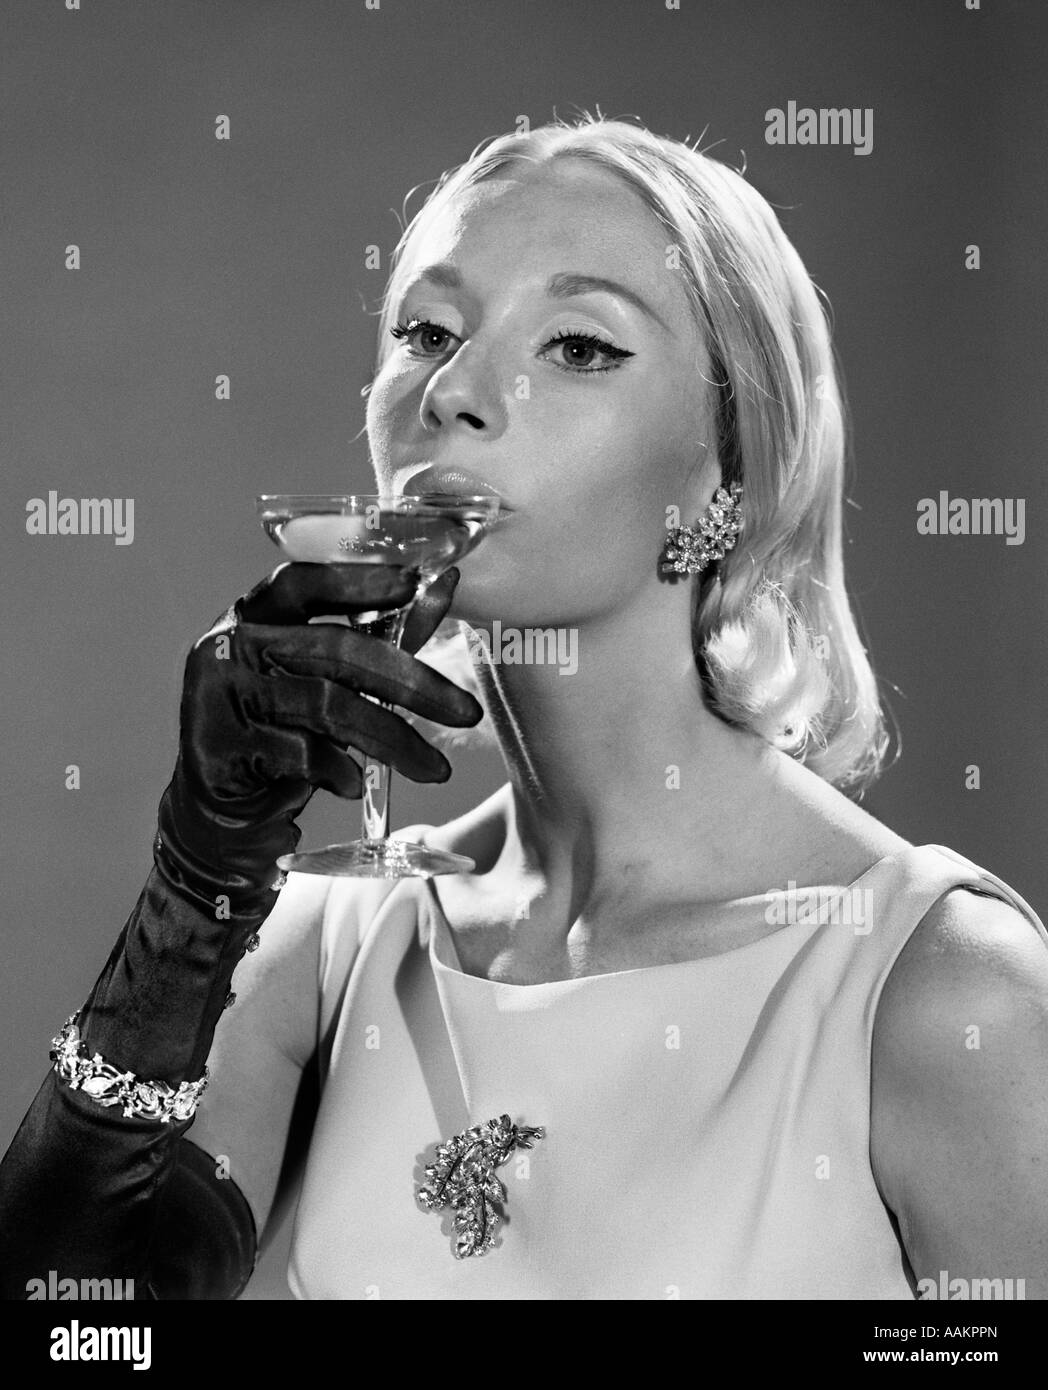 Black gloves for gown - 1960s Elegant Portrait Blond In Gown Long Black Gloves Sipping Champagne